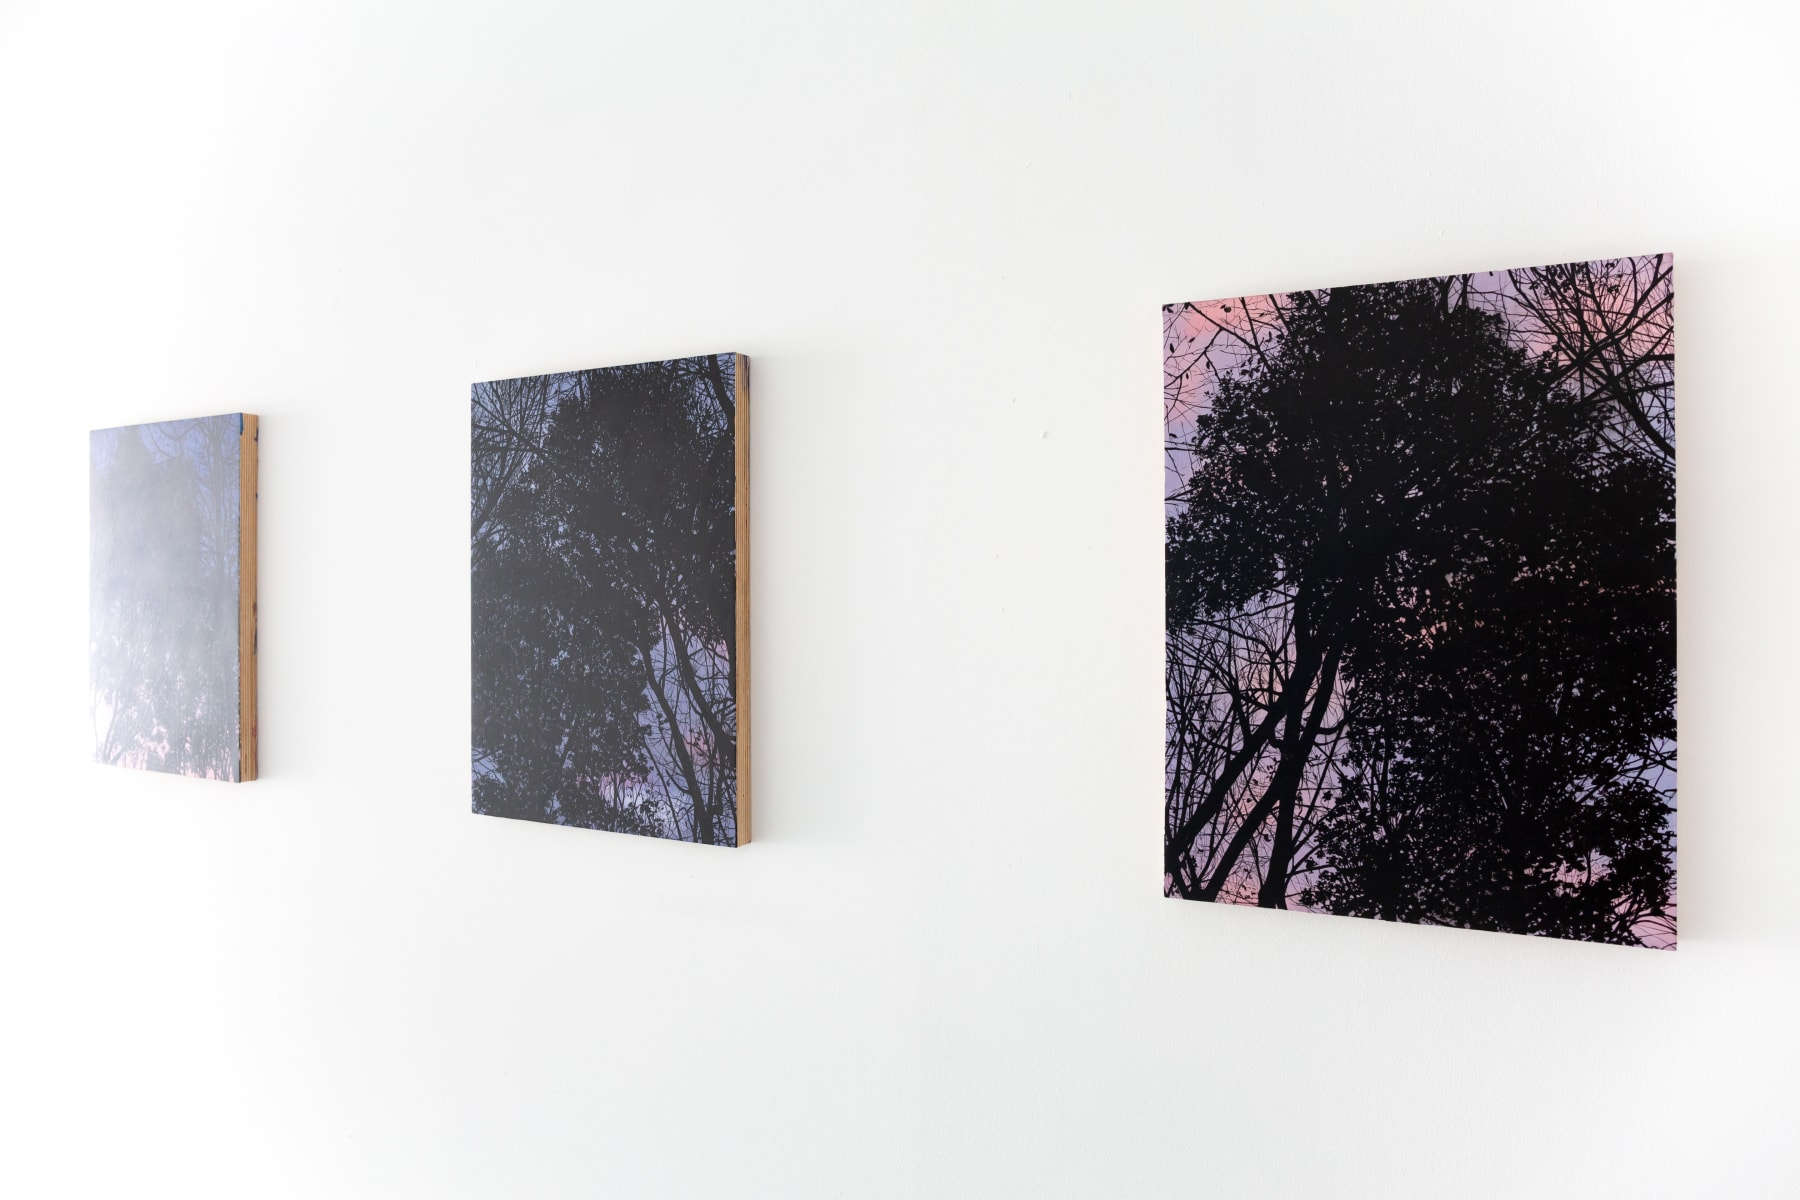 Rebecca Partridge, On a Clear Day, Informality, installation view 2021. Image courtesy of Informality.